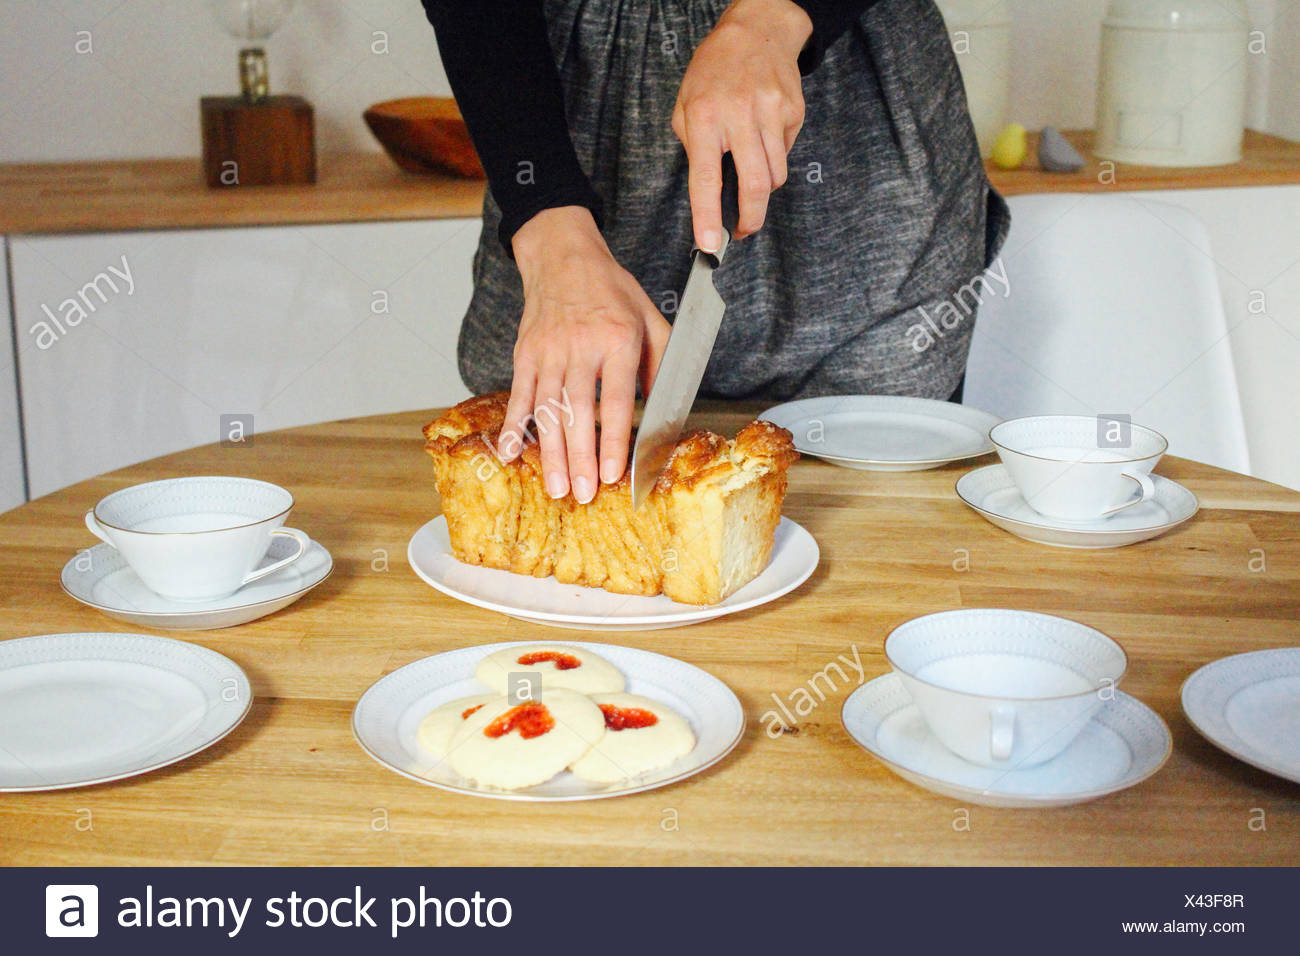 Woman Cutting Bread On Table - Stock Image